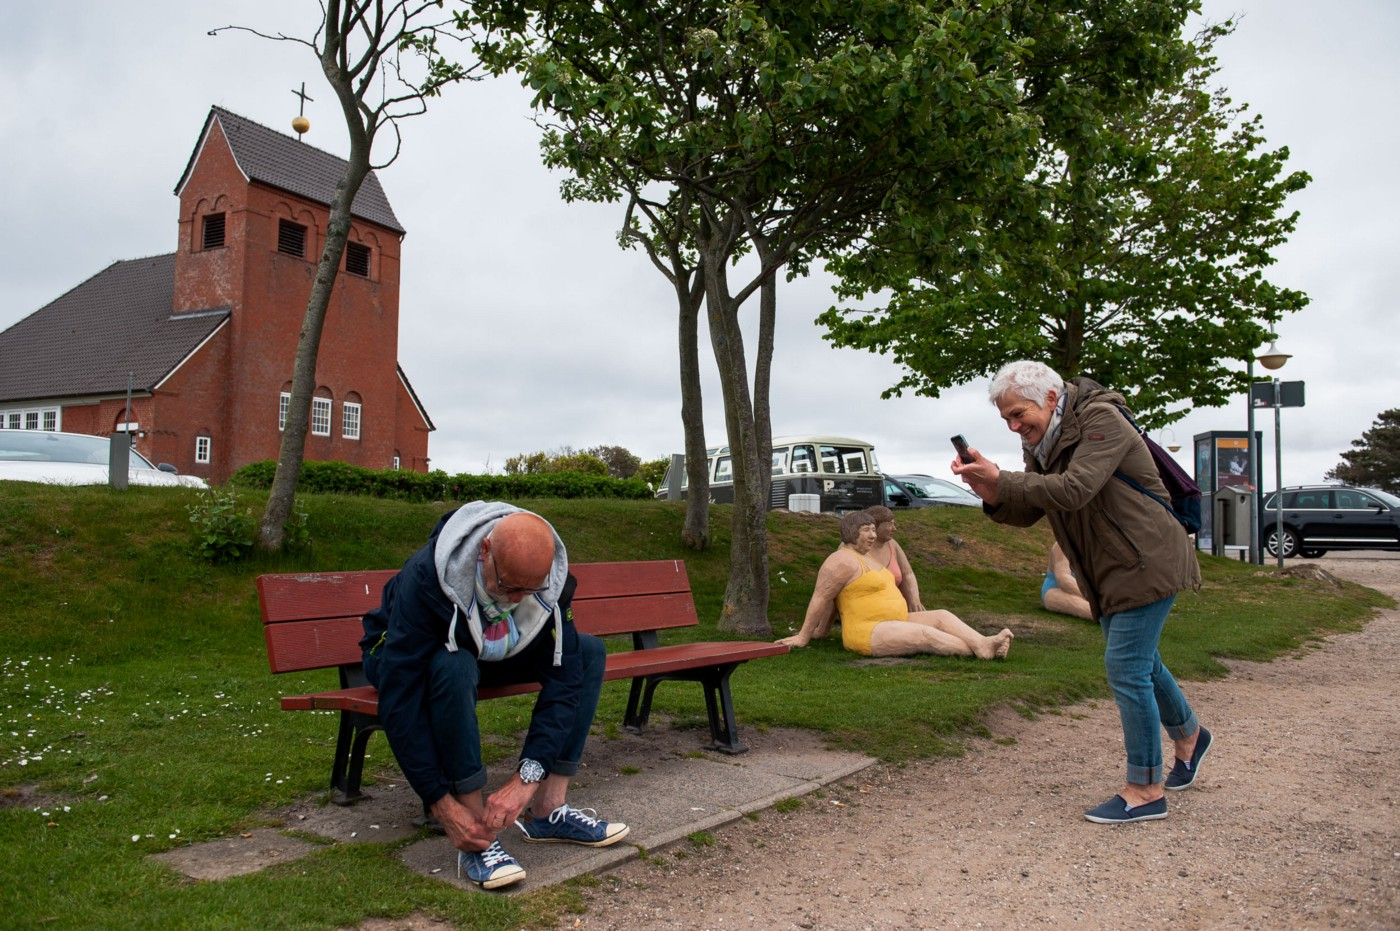 Having reached the pond in Wenningstedt, mom photographs dad fastening his shoelaces. Sylt, Germany, May 25, 2019.